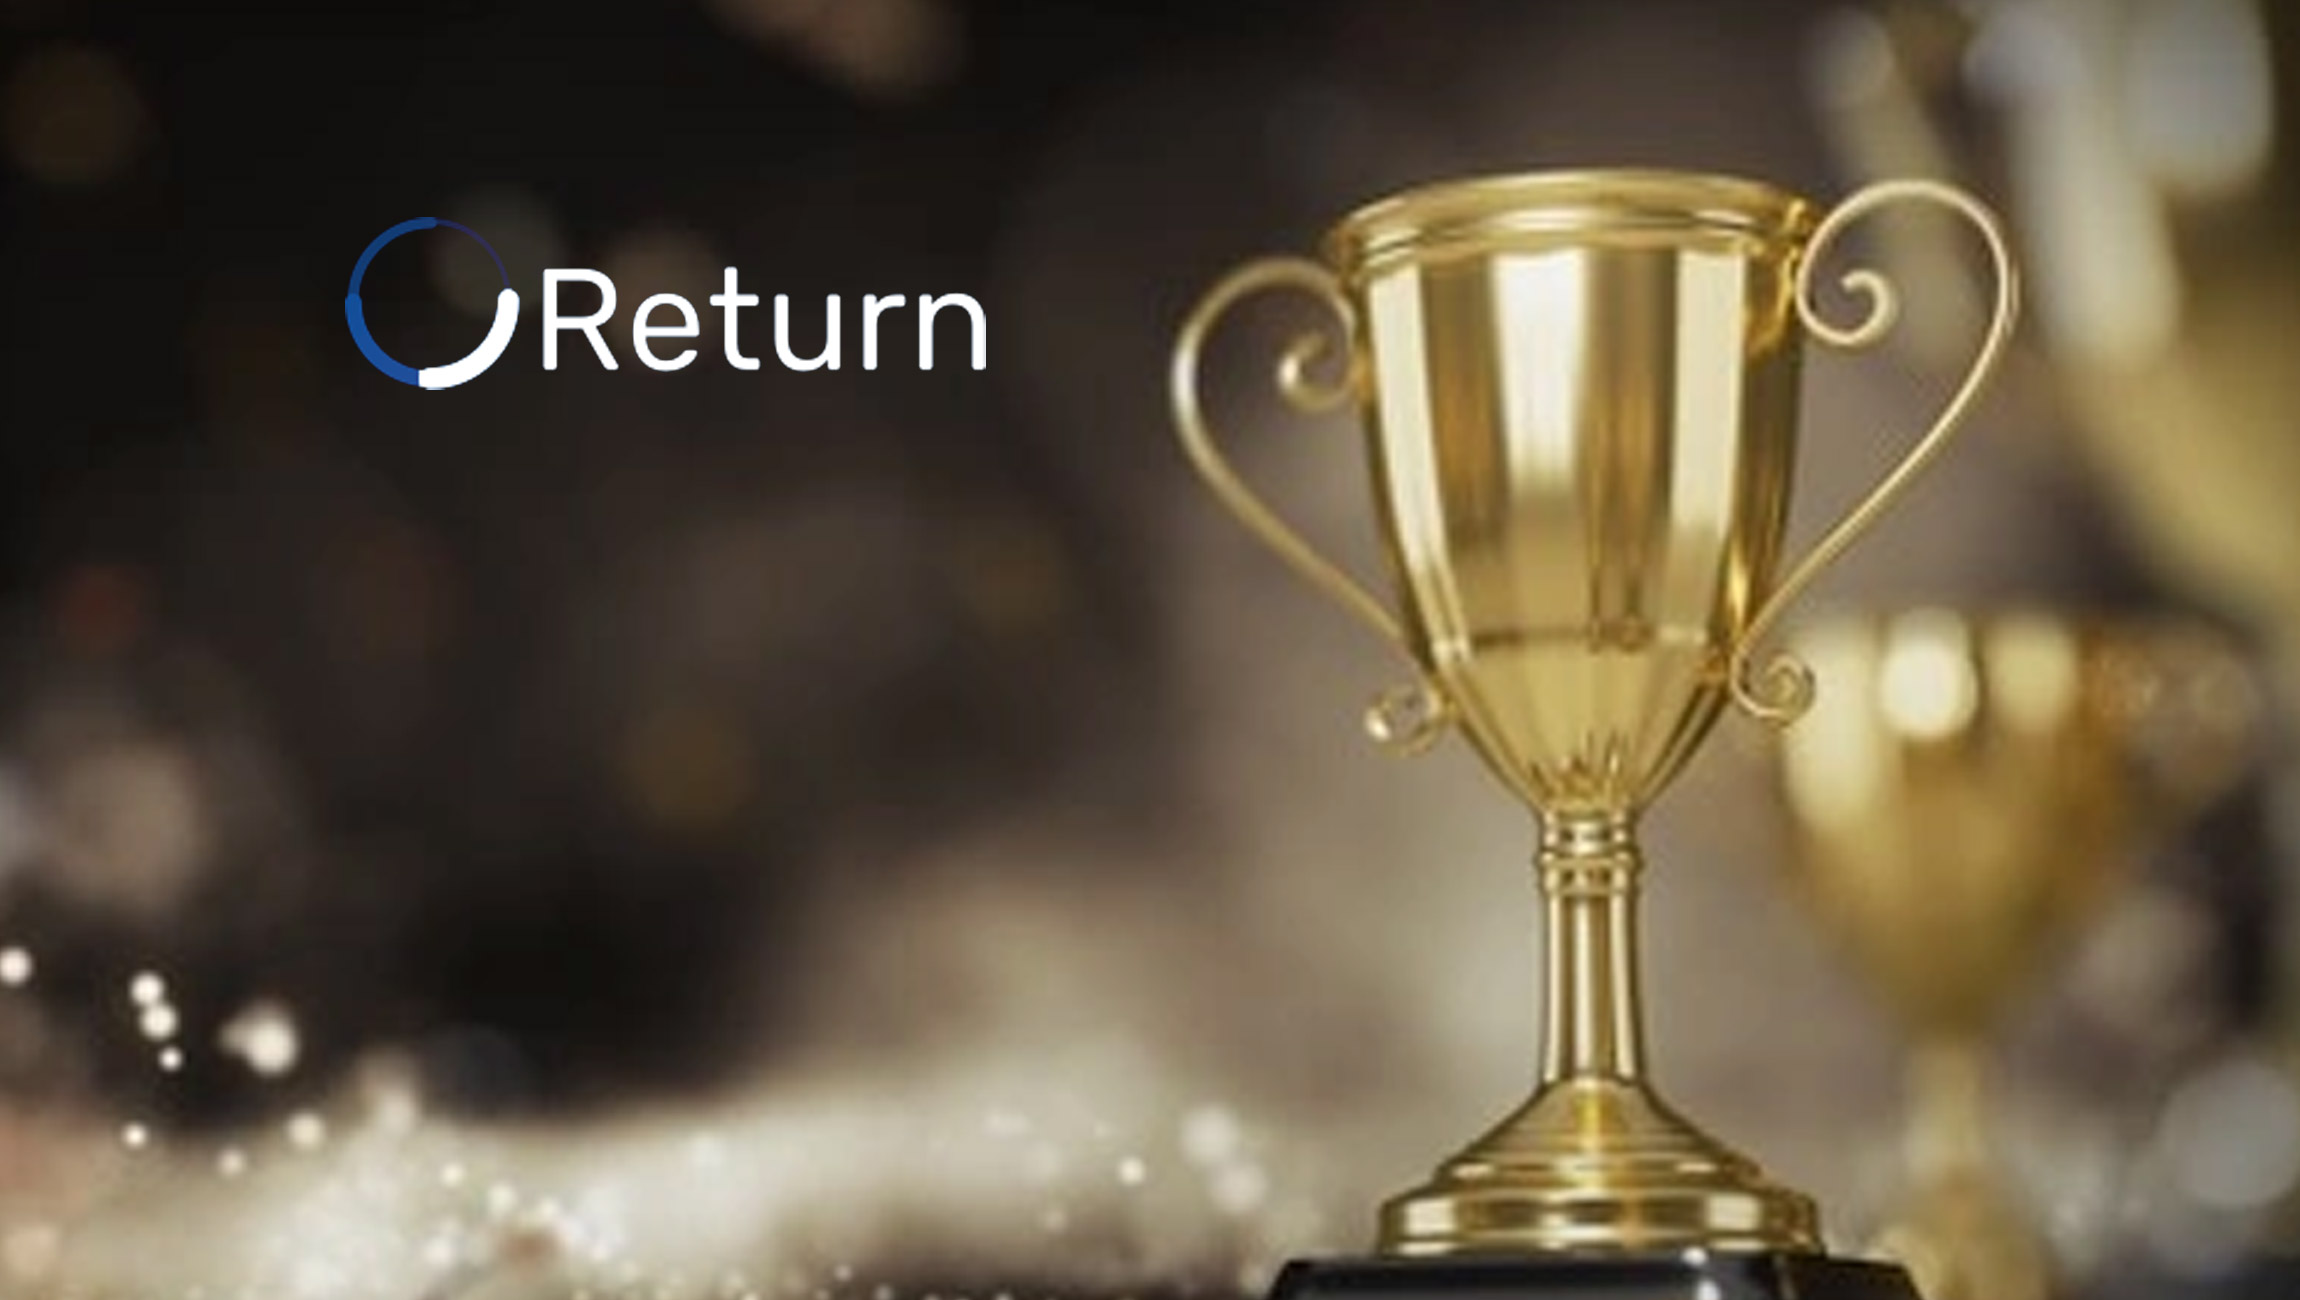 Return Awarded TEDCO Investment To Simplify And Scale Enterprise Sales Intelligence